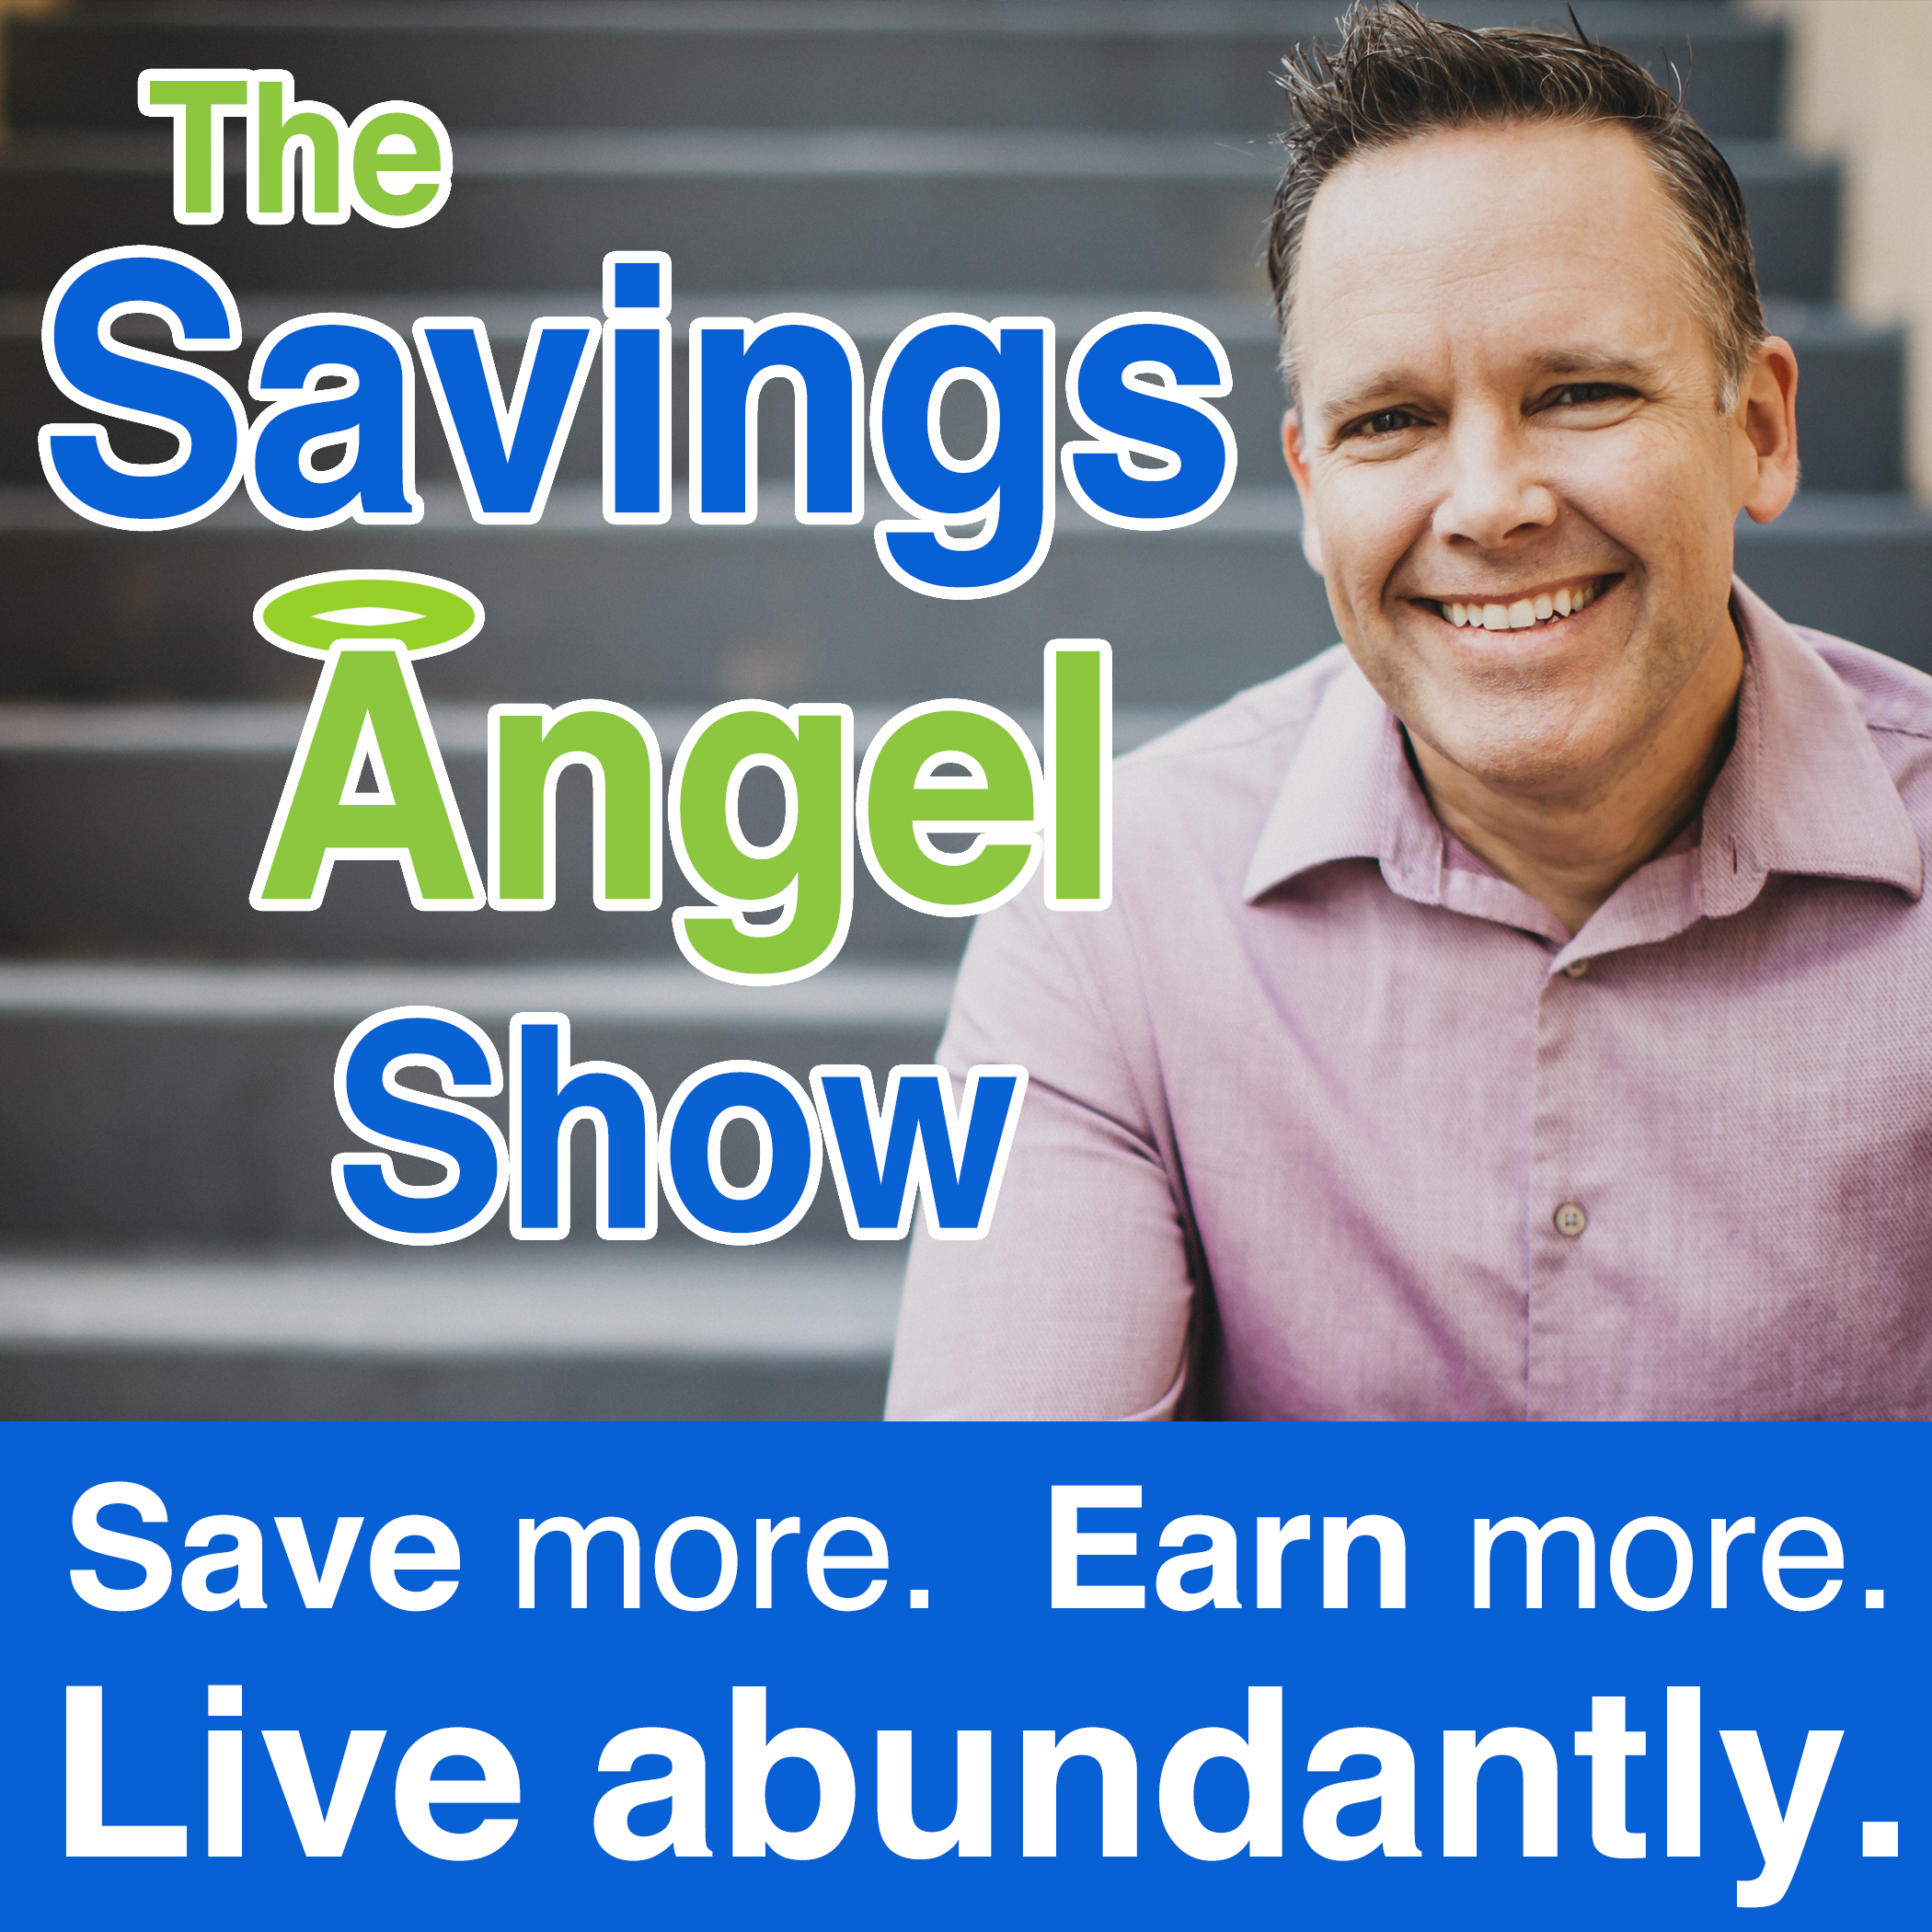 266 - The ULTIMATE Personal Finance Course with a Limited Time Offer from NextGen Wealth's Clint Haynes